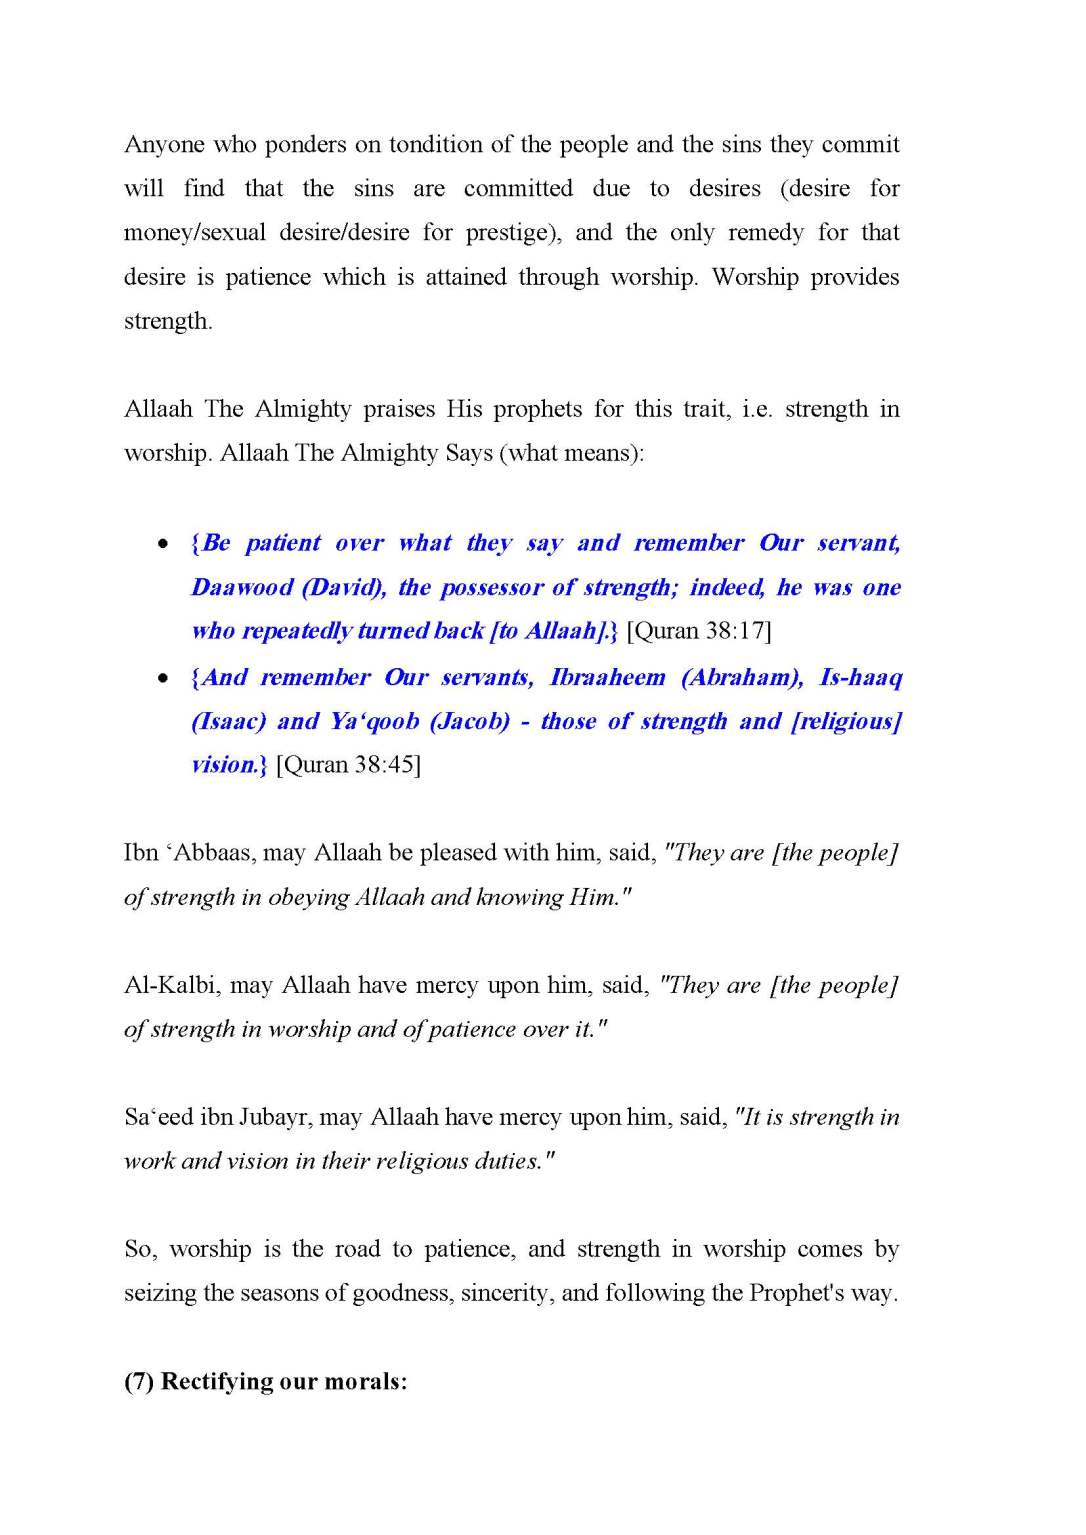 Benefits_and_Secrets_of_Fasting_Page_22